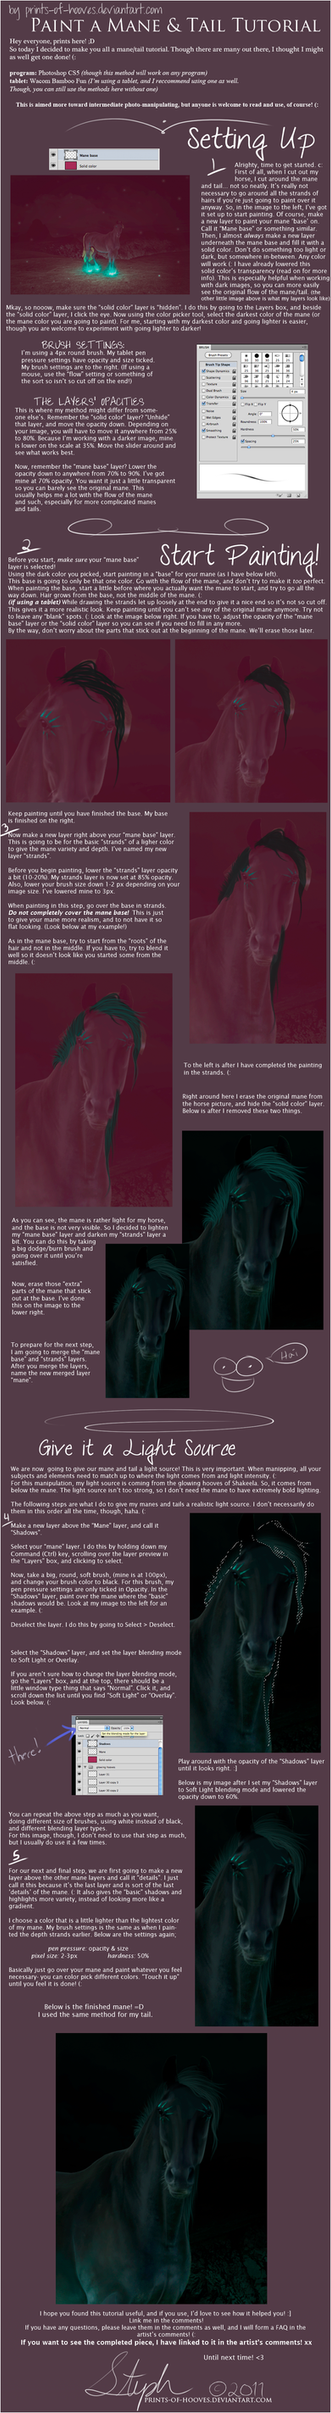 Nighttime Painting Manes and Tails Tutorial by prints-of-hooves